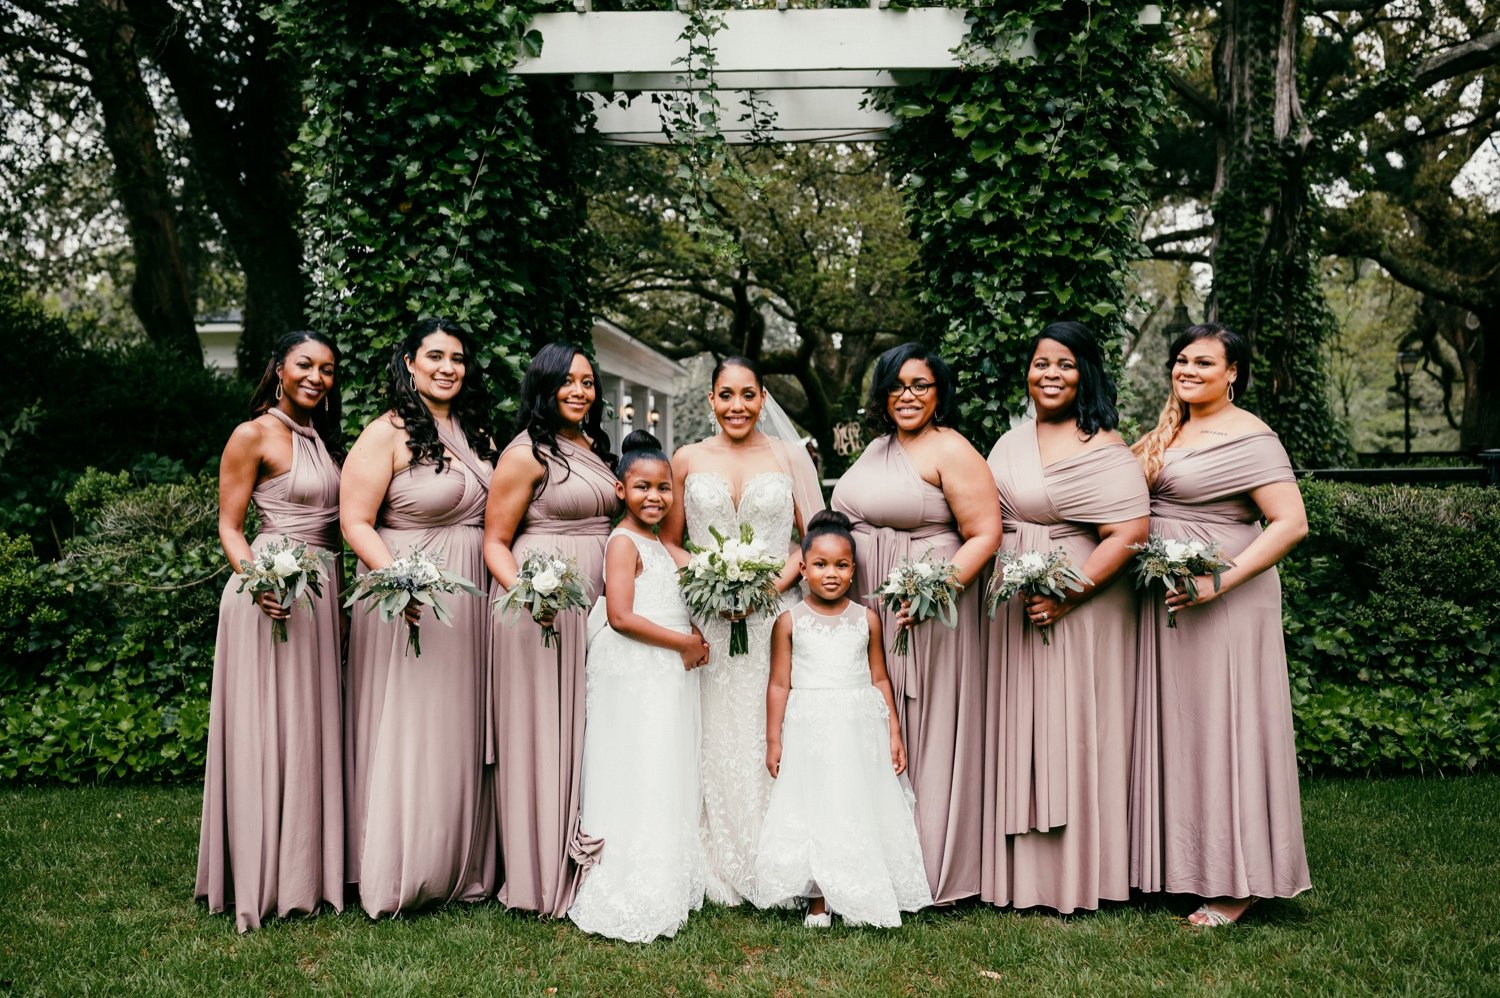 photo of all the bridesmaids in their blush pink dresses with the bride and flowergirls